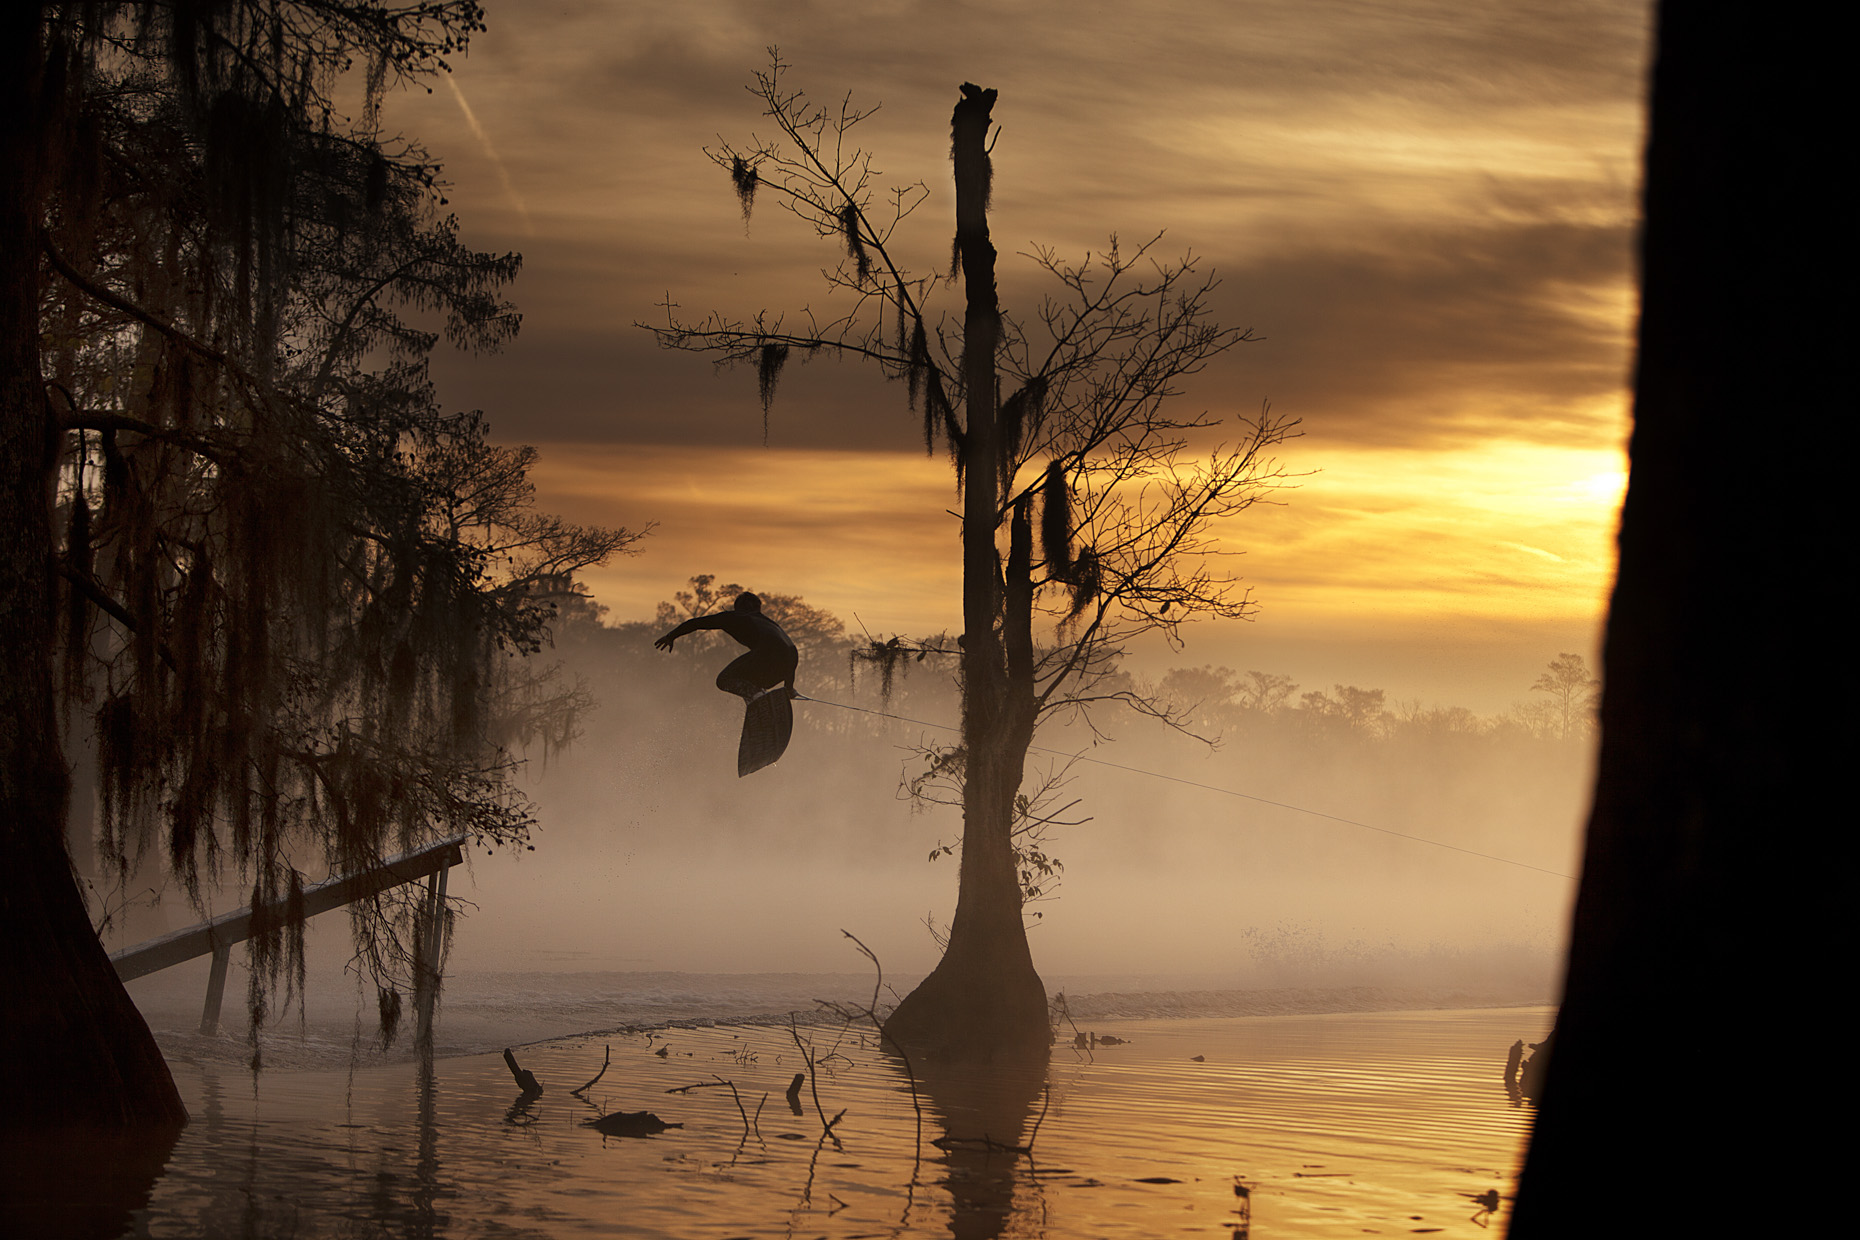 JD Webb wake boarding the swamps of Louisiana for Red Bull by Boston based commercial sports photographer Brian Nevins